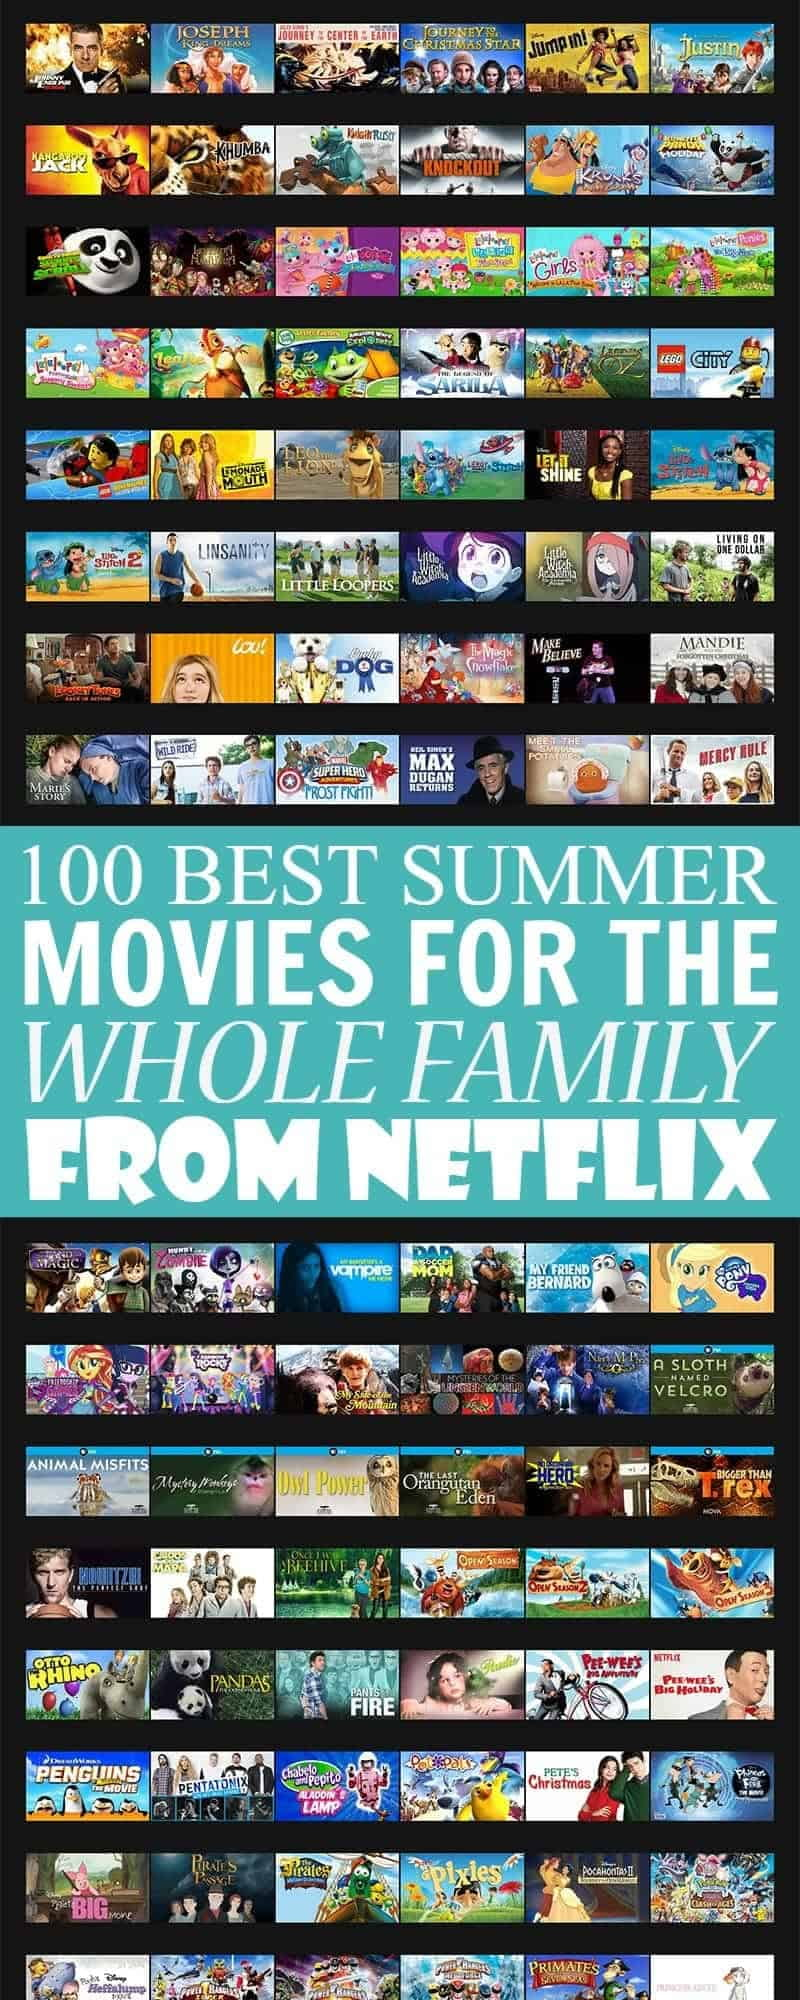 100 Best Summer Movies for the Whole Family on Netflix